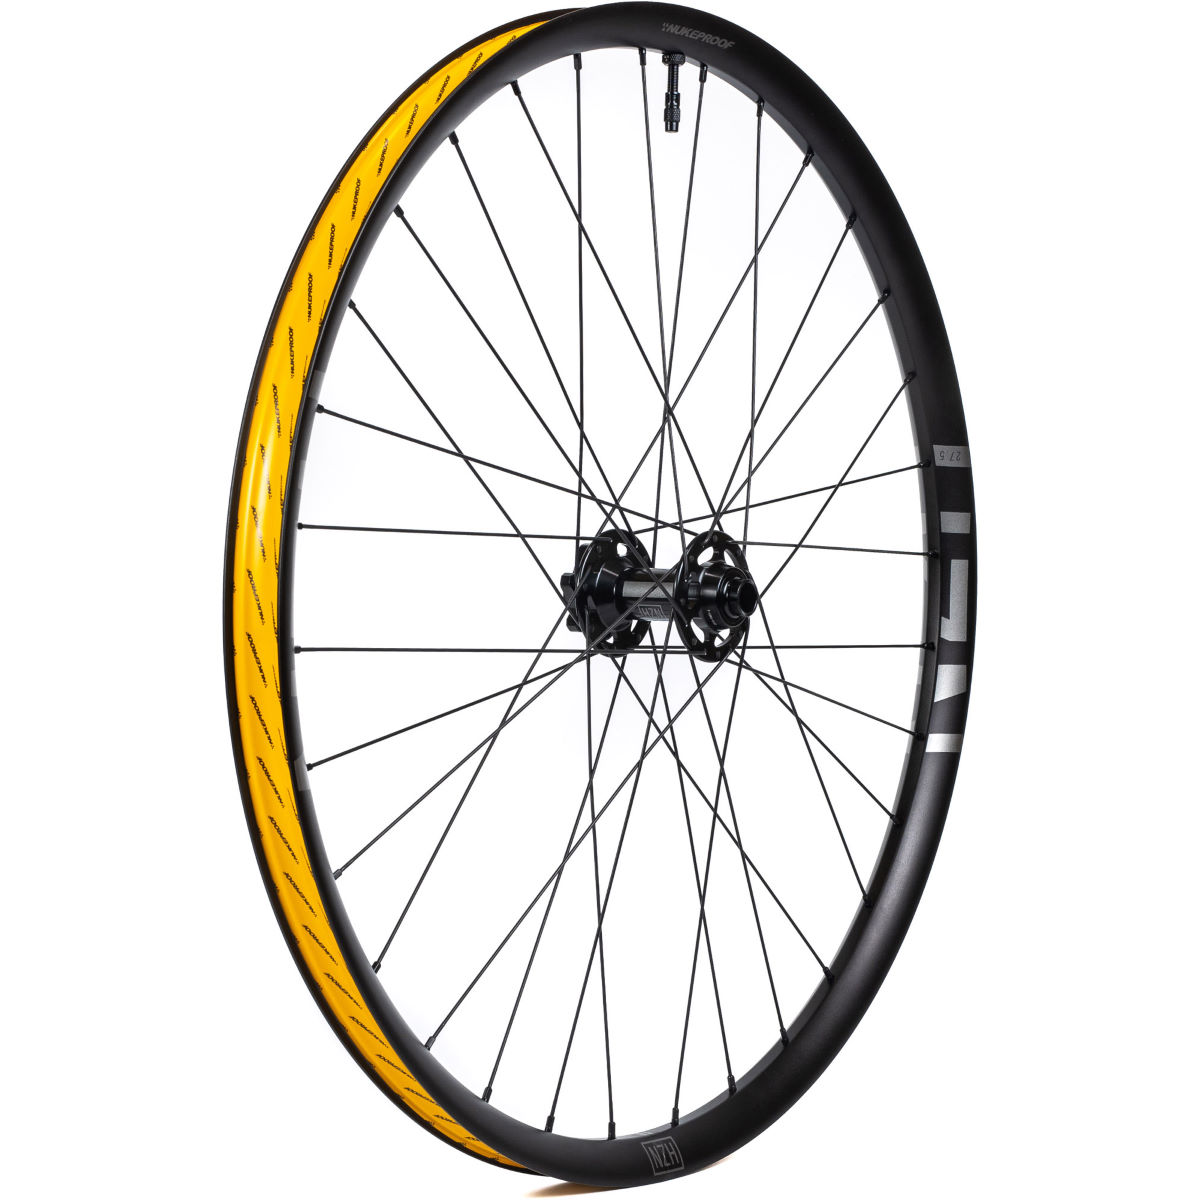 Nukeproof Nukeproof Horizon V2 Front Wheel   Front Wheels